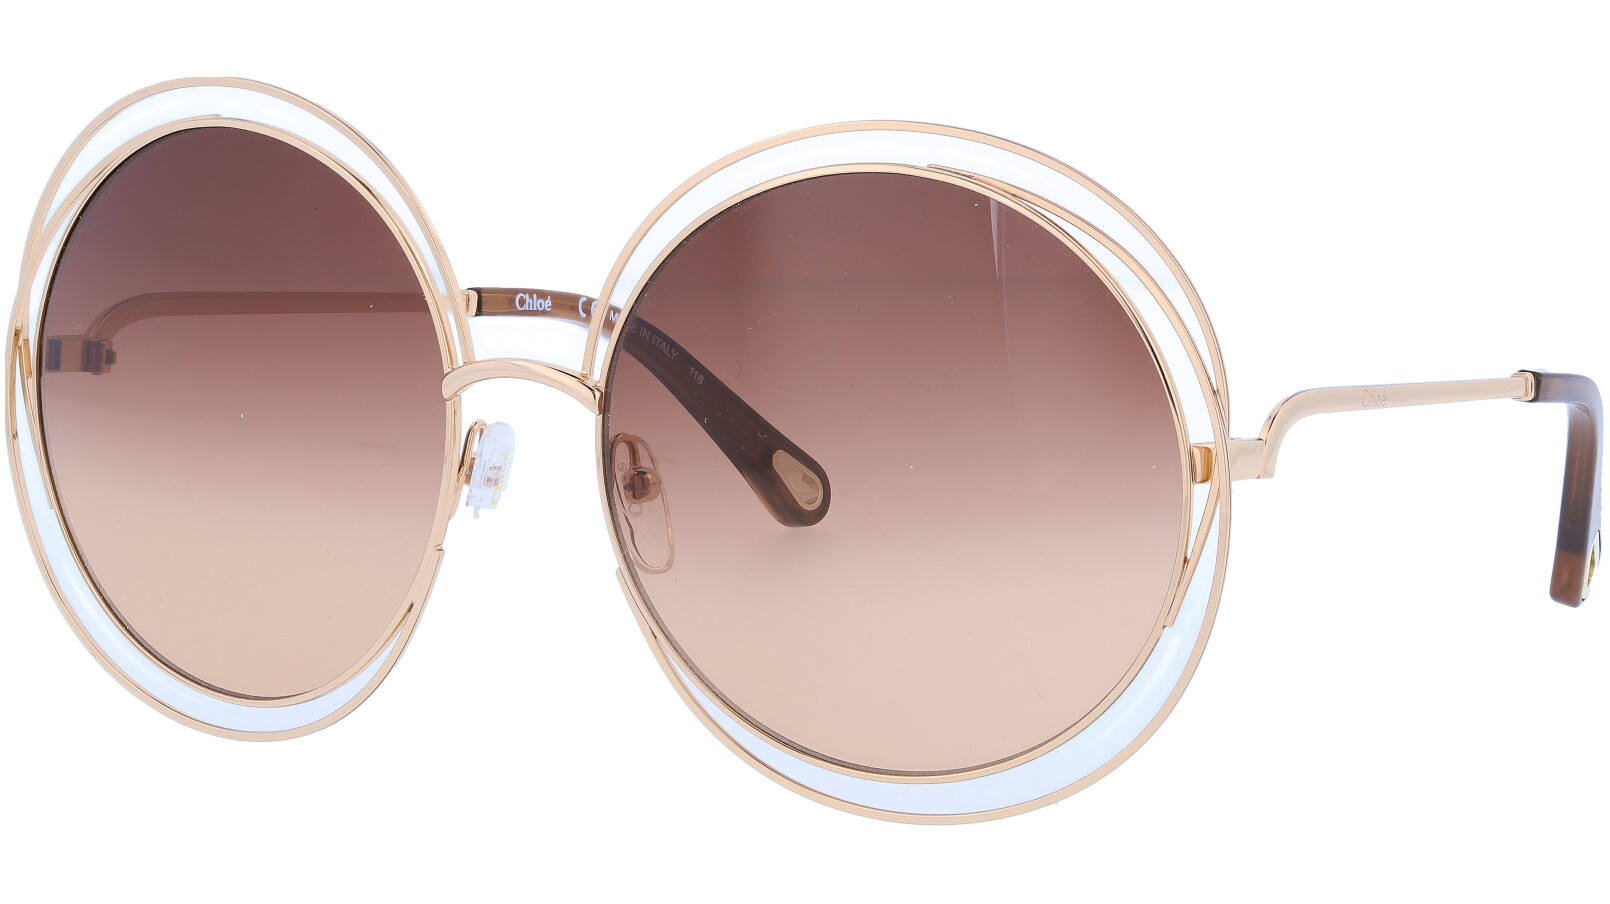 CHLOE CE114SD 724 62 Gold Round Sunglasses